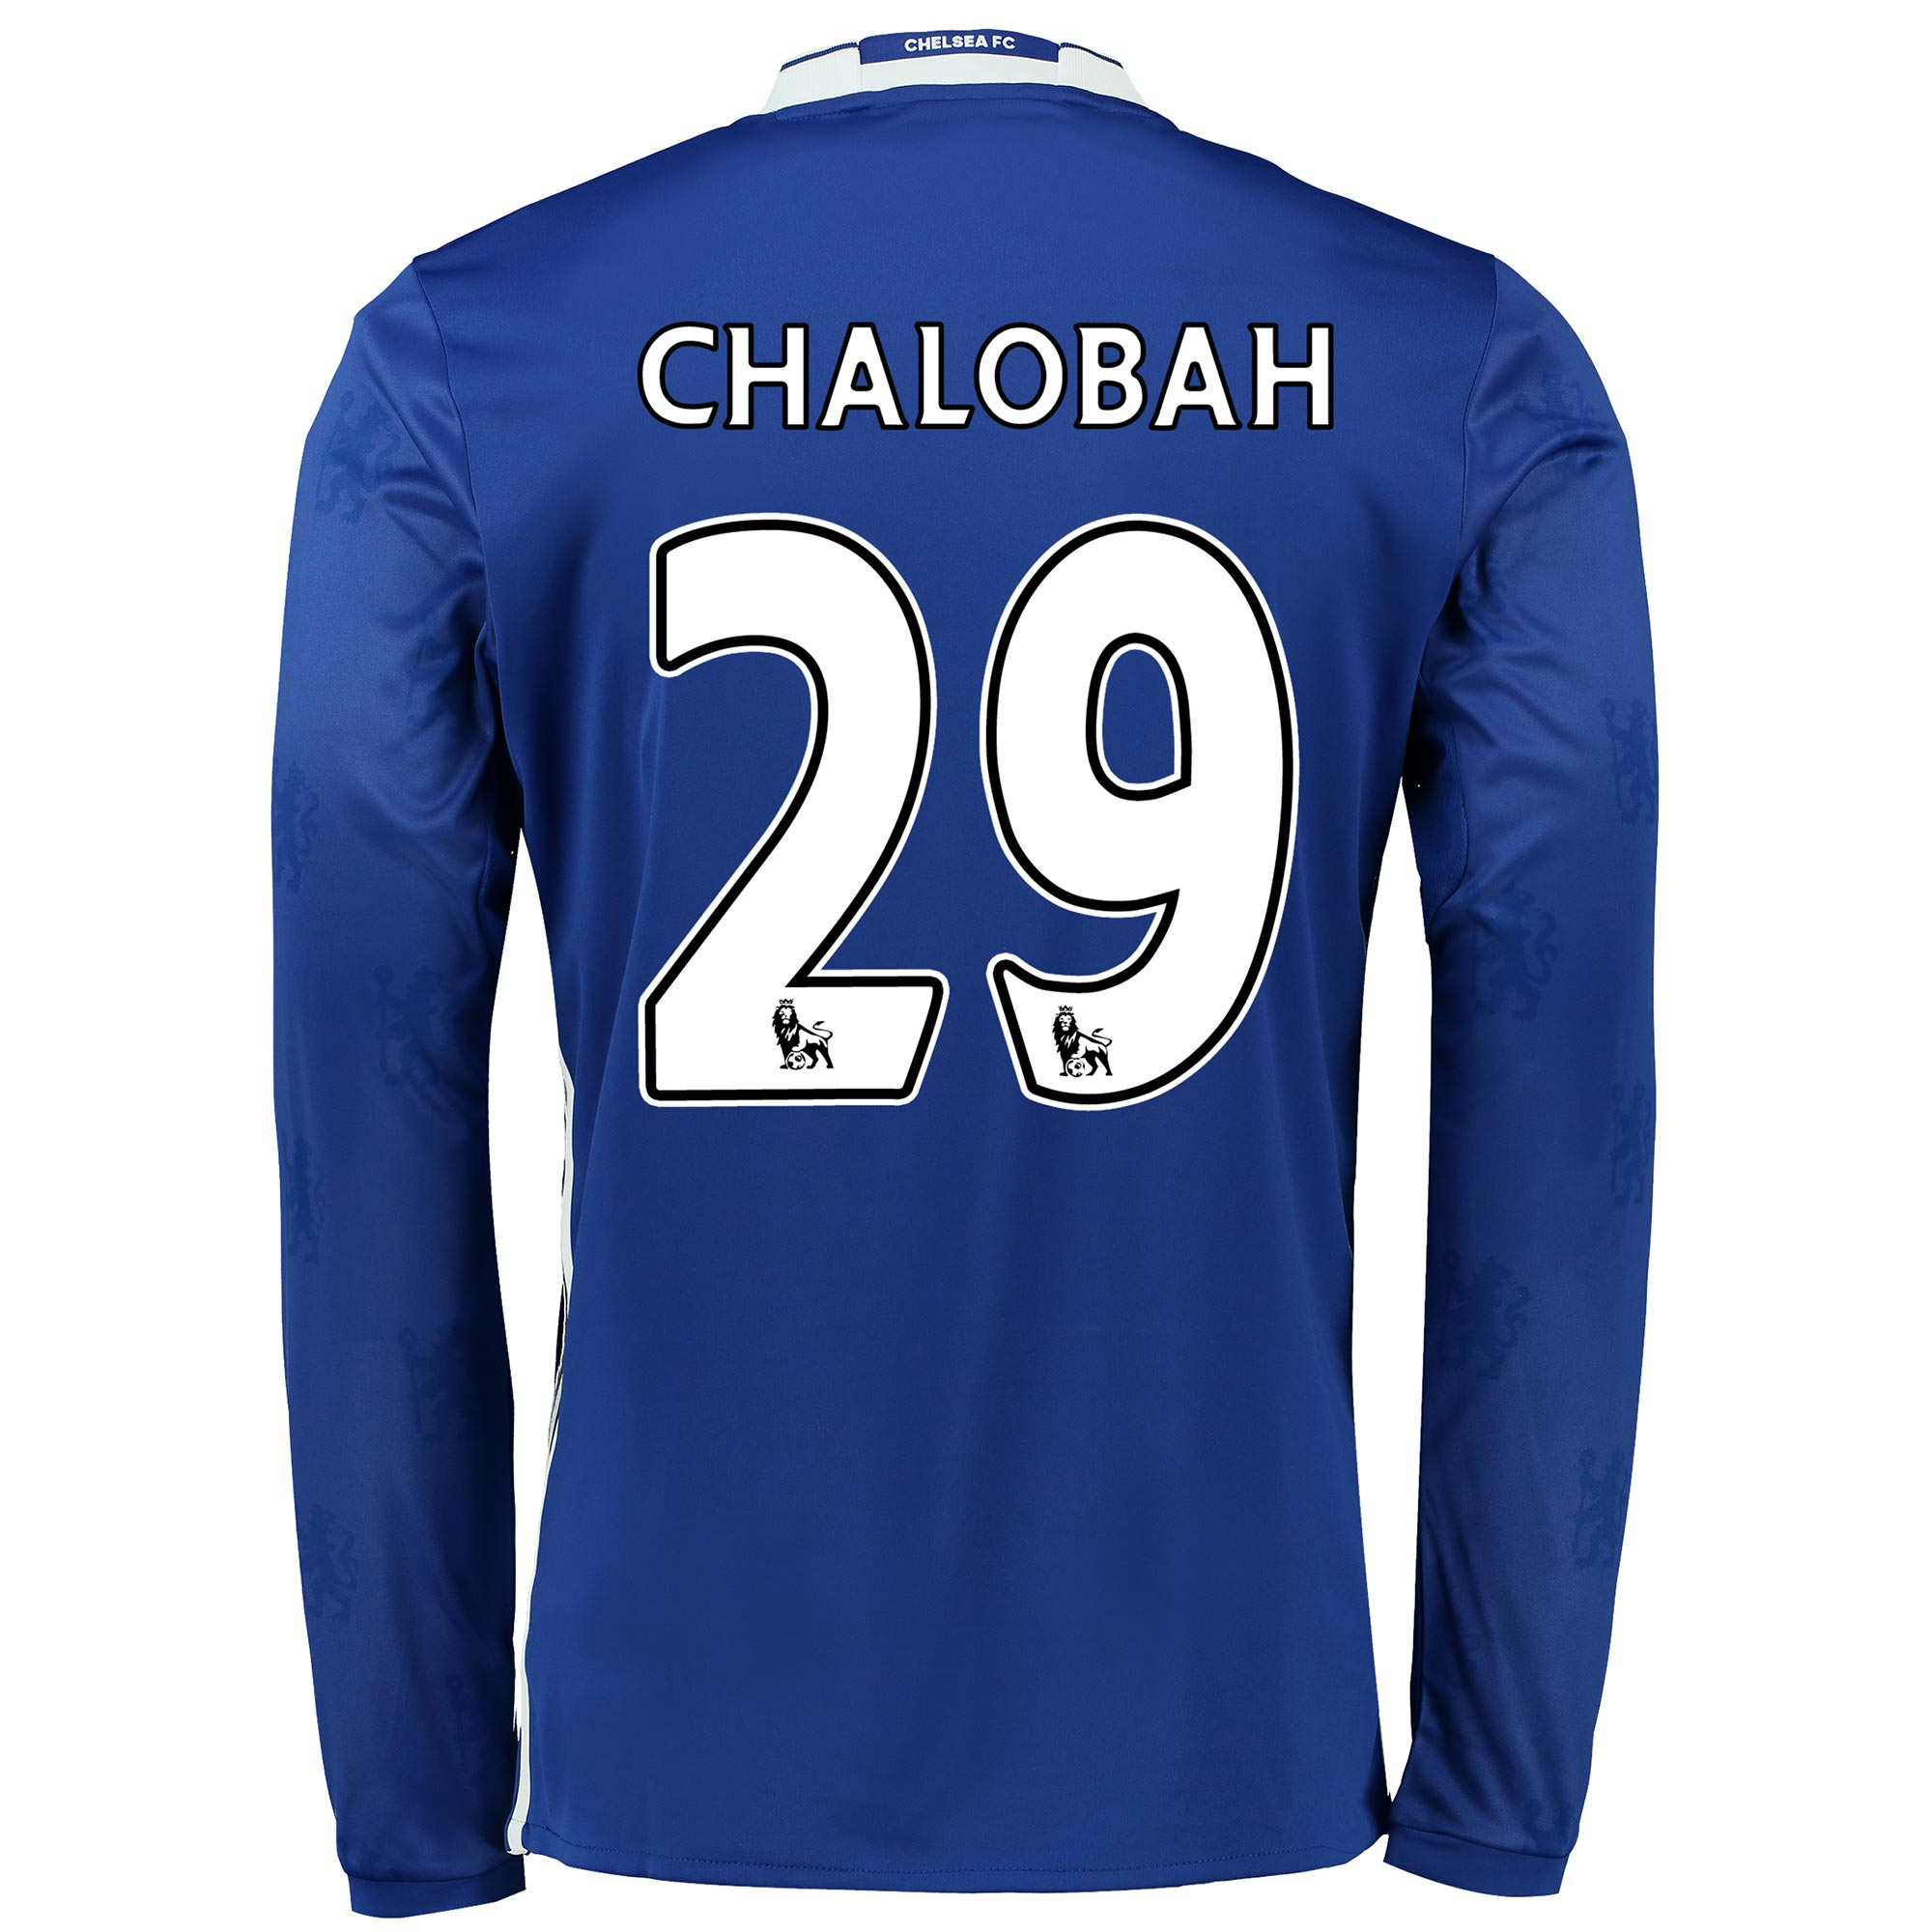 Chelsea Home Shirt 2016-17 - Kids - Long Sleeve with Chalobah 29 print